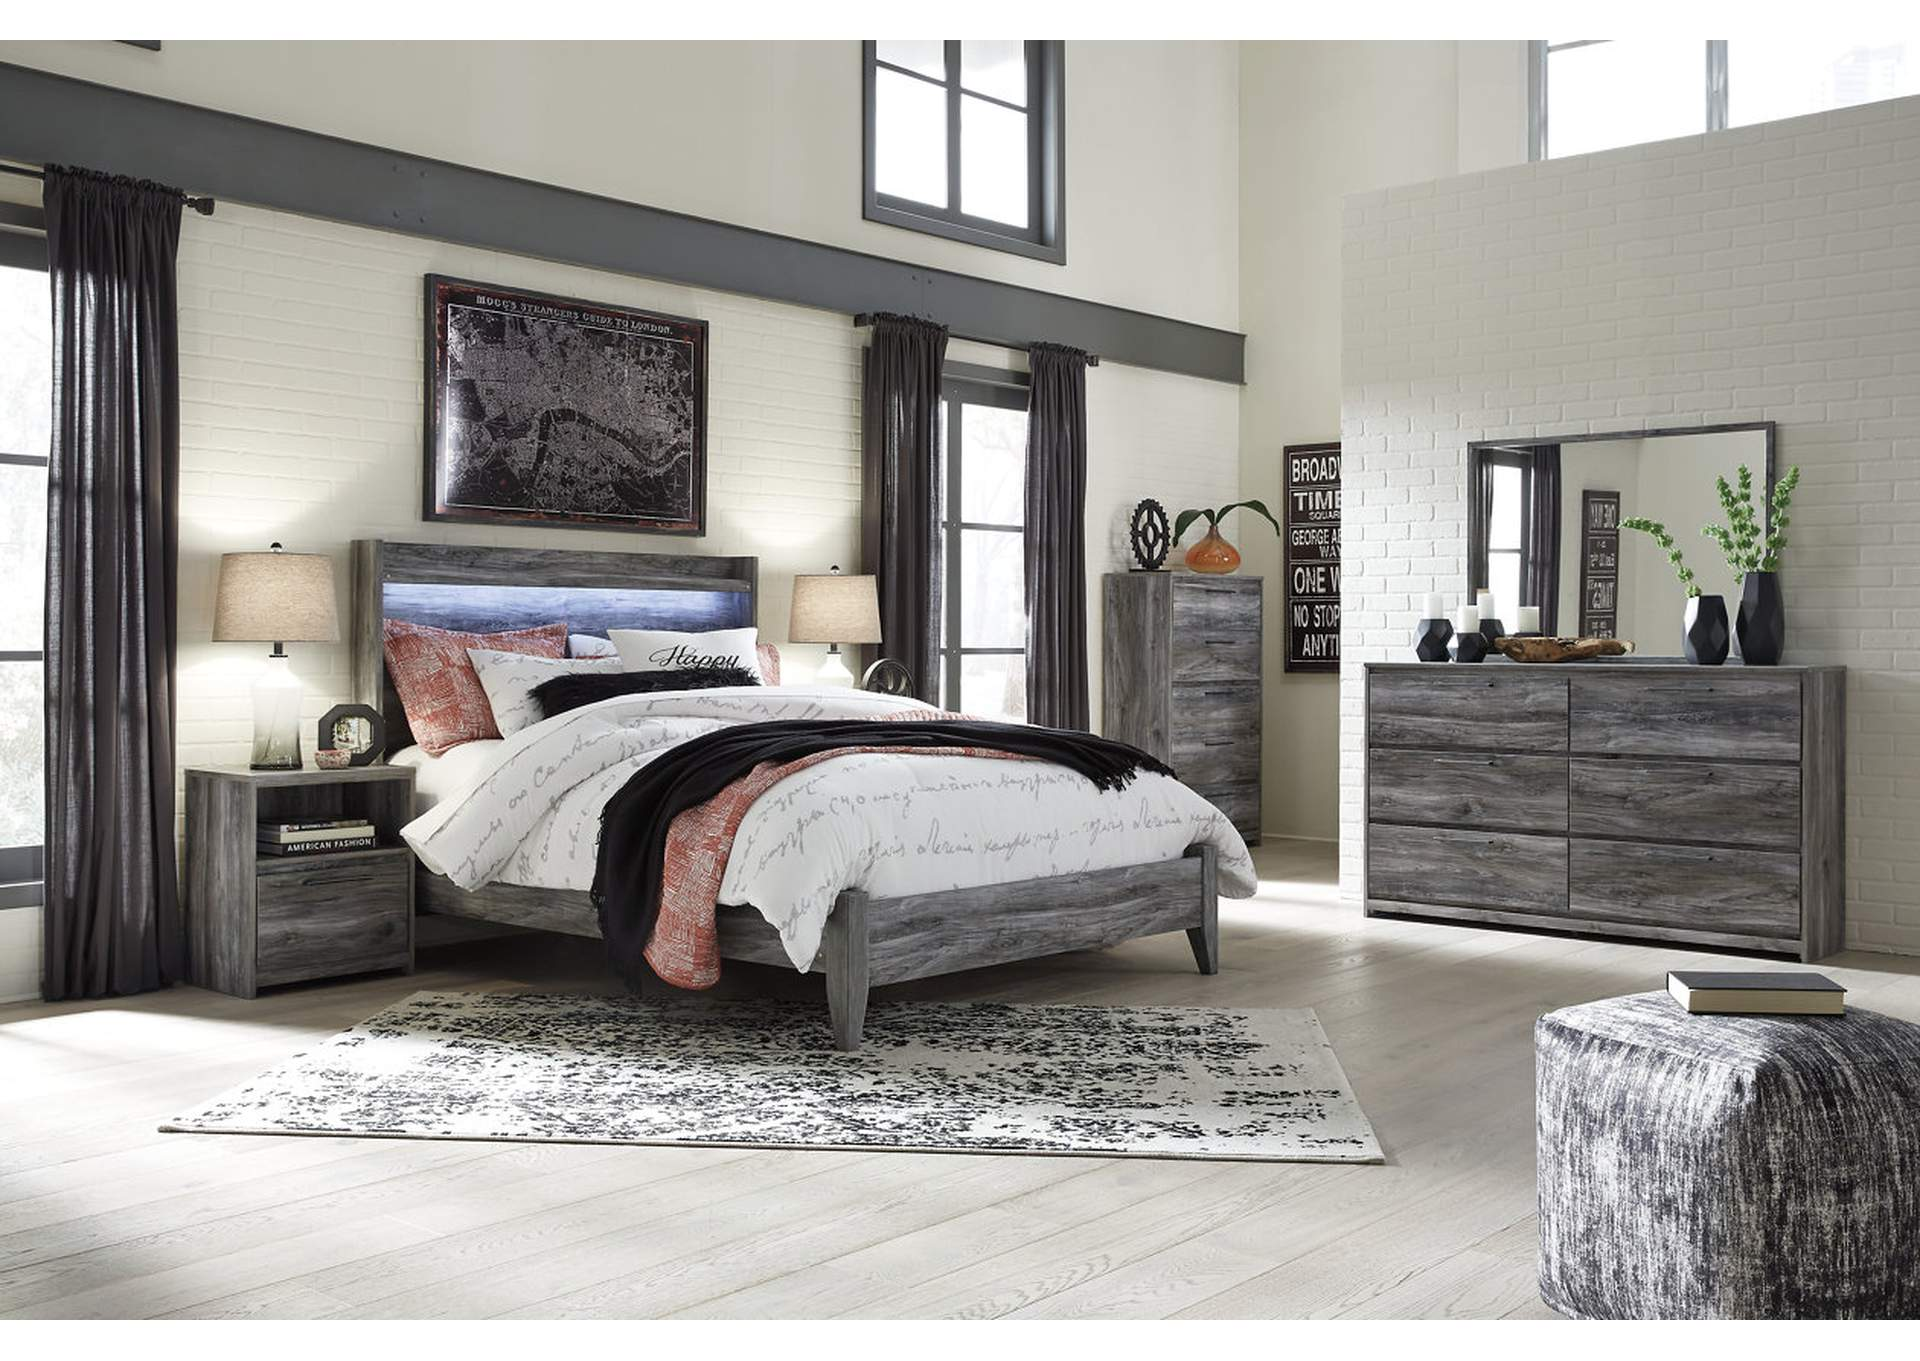 Baystorm Gray Queen Panel Bed w/Dresser, Mirror, Drawer Chest and Nightstand,Signature Design By Ashley